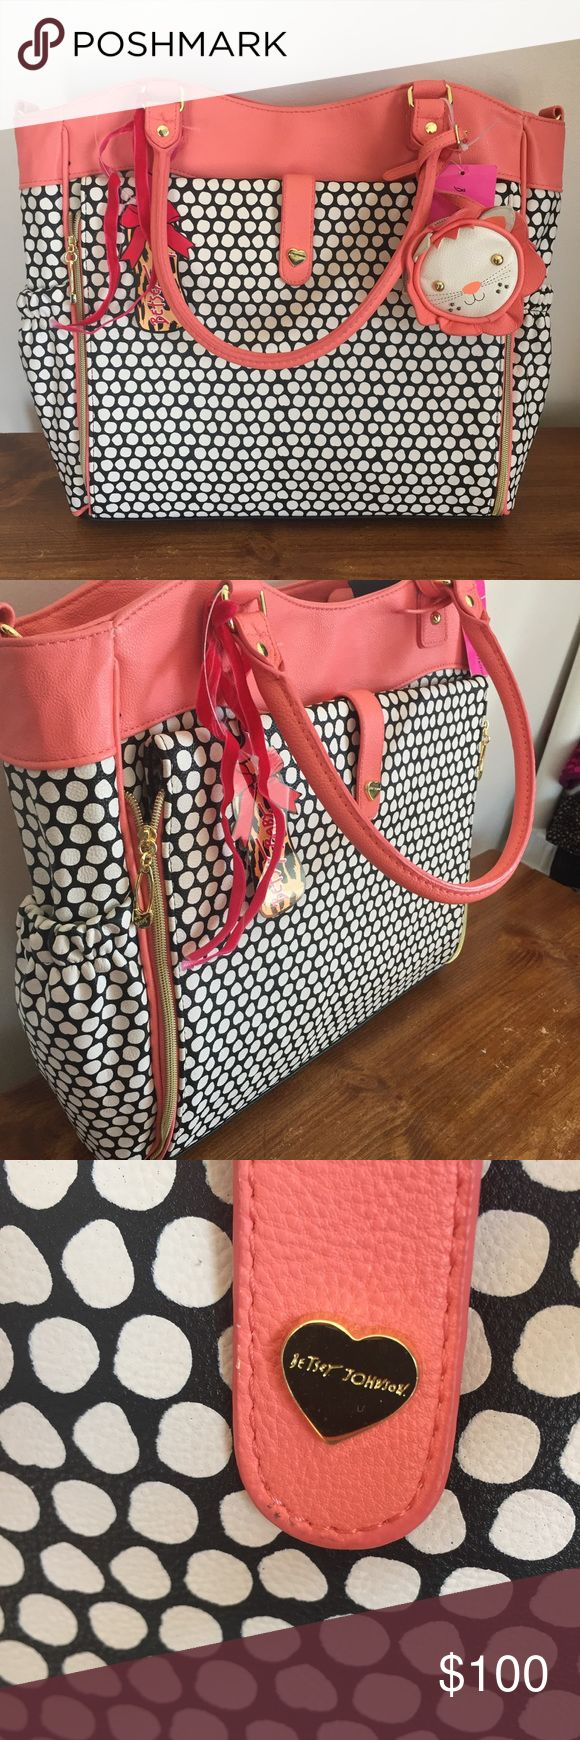 New! Betsey Johnson Diaper Bag Super cute Betsey Johnson Diaper bag! Black and white pattern with coral accents. Lion coin purse is adorable. Adjustable crossbody straps. Make an offer! Betsey Johnson Bags Baby Bags